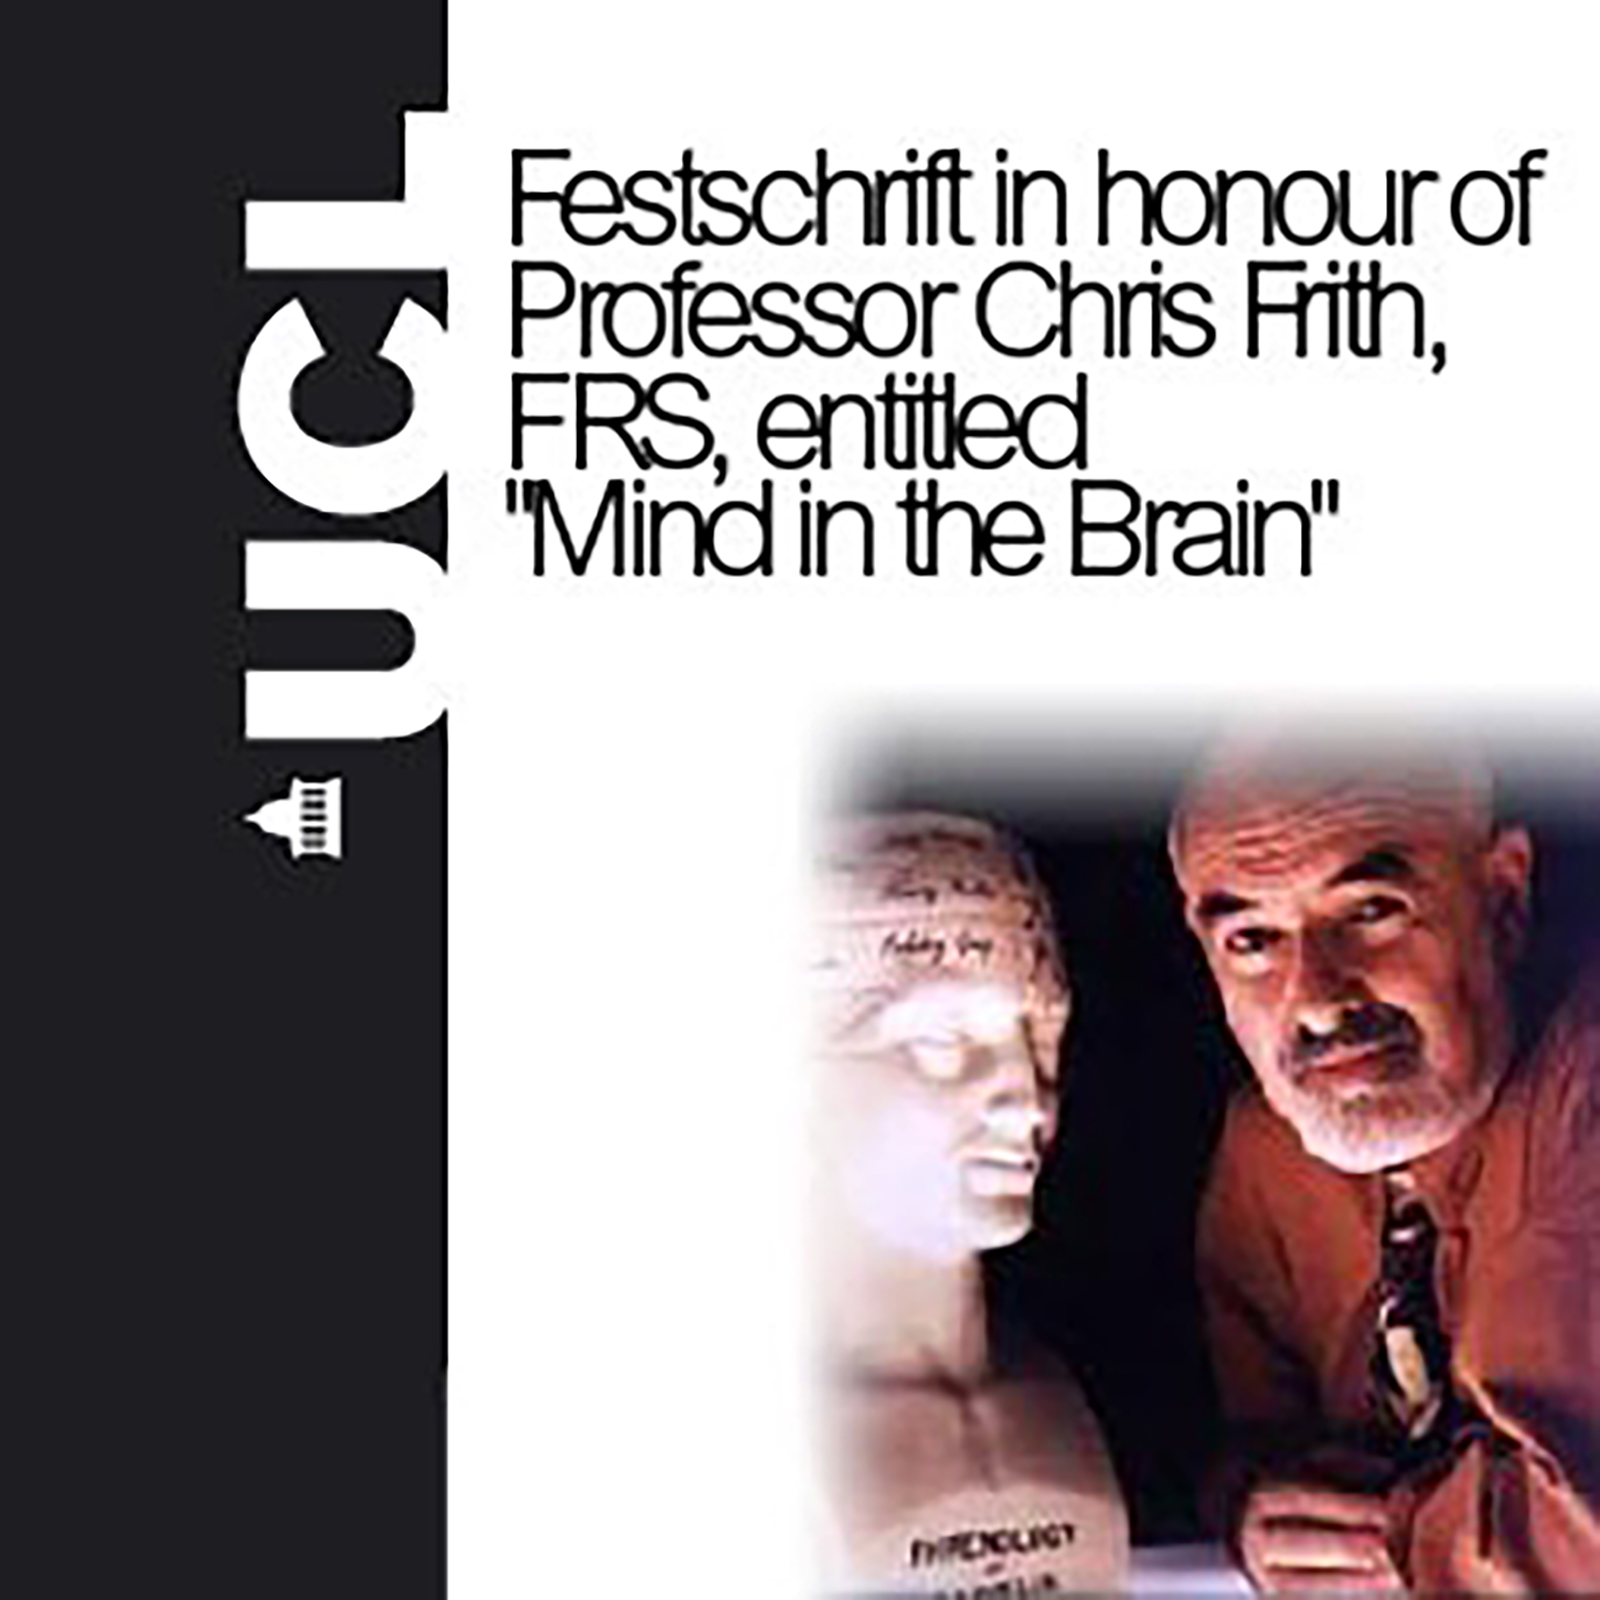 Mind in the Brain - Festschrift in honour of Professor Chris Frith, FRS - Video